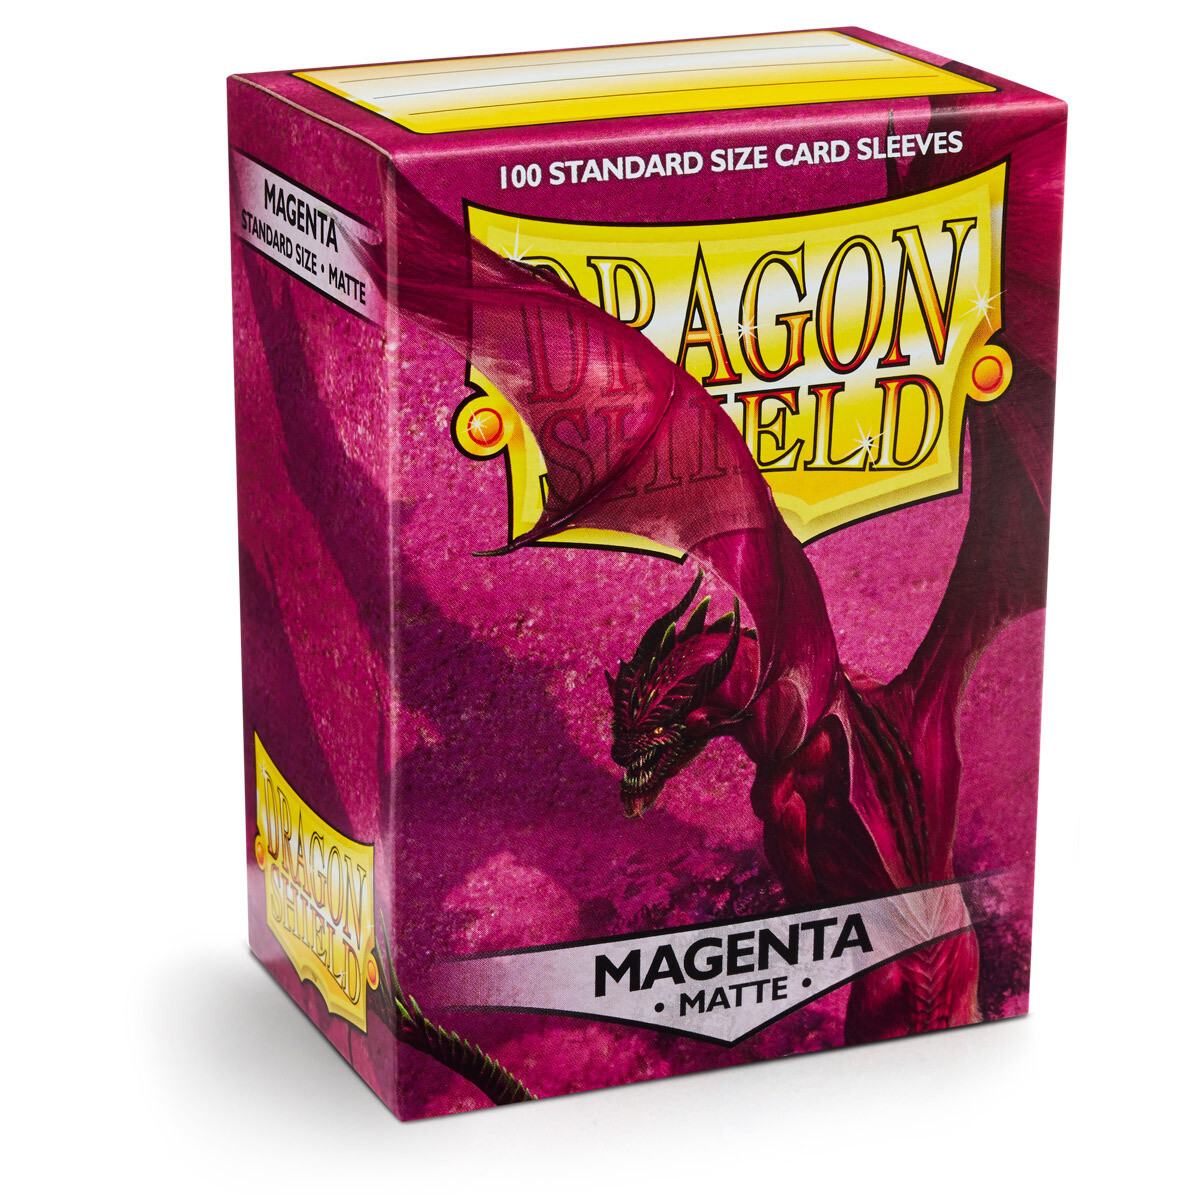 Dragon Shield 100 Sleeves - Matte Magenta